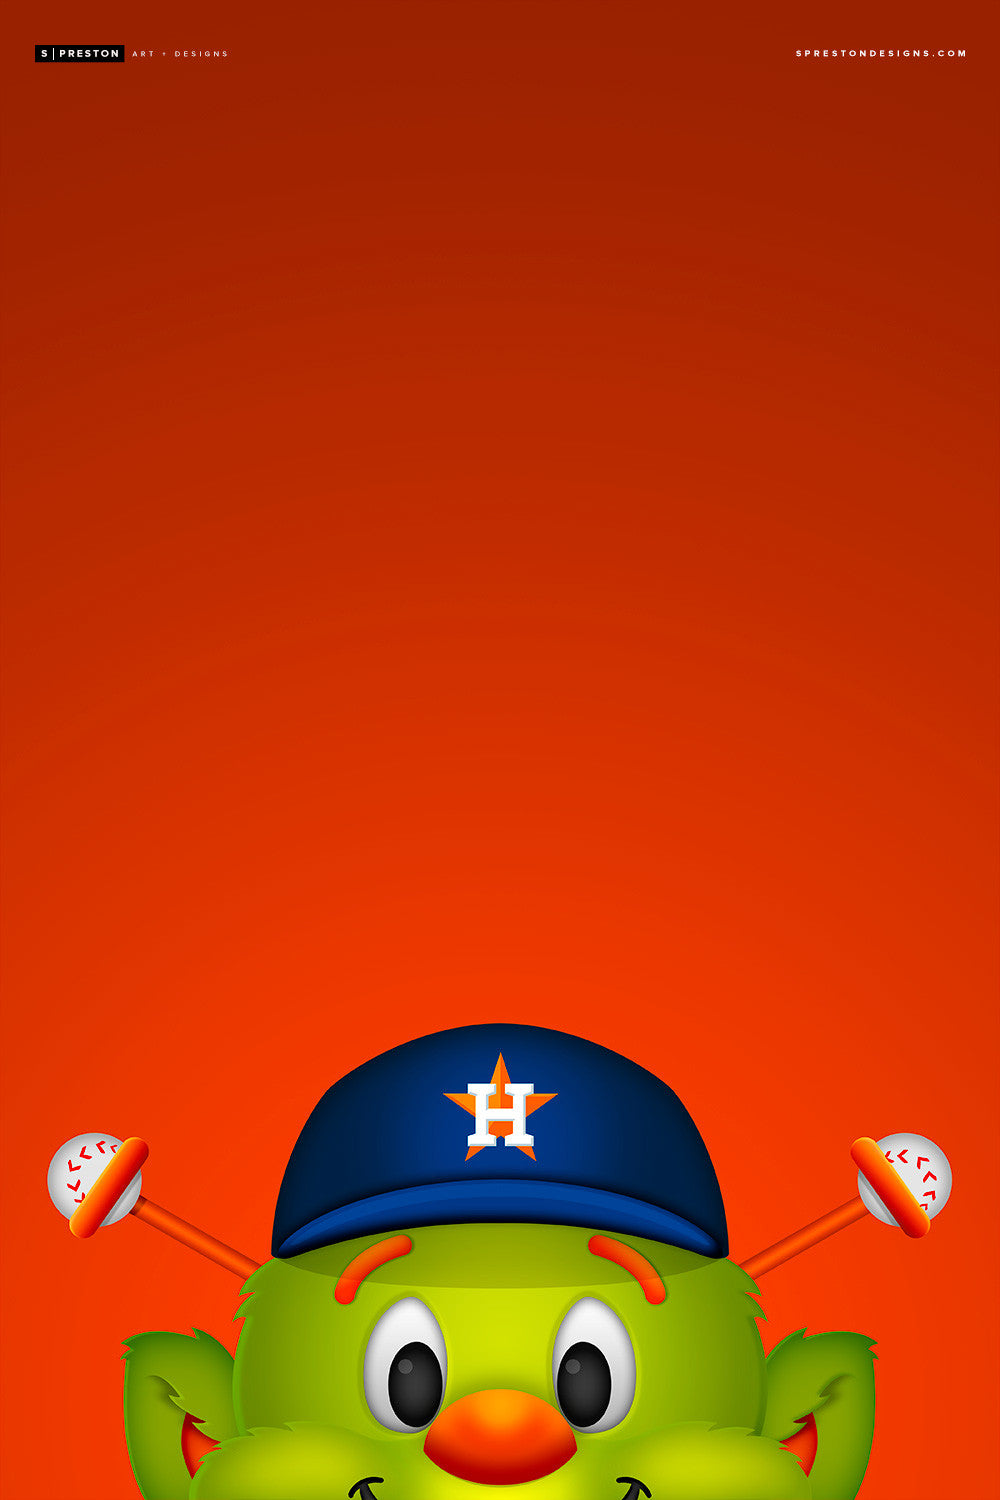 Minimalist Orbit Canvas Canvas - Houston Astros - S. Preston Art + Designs